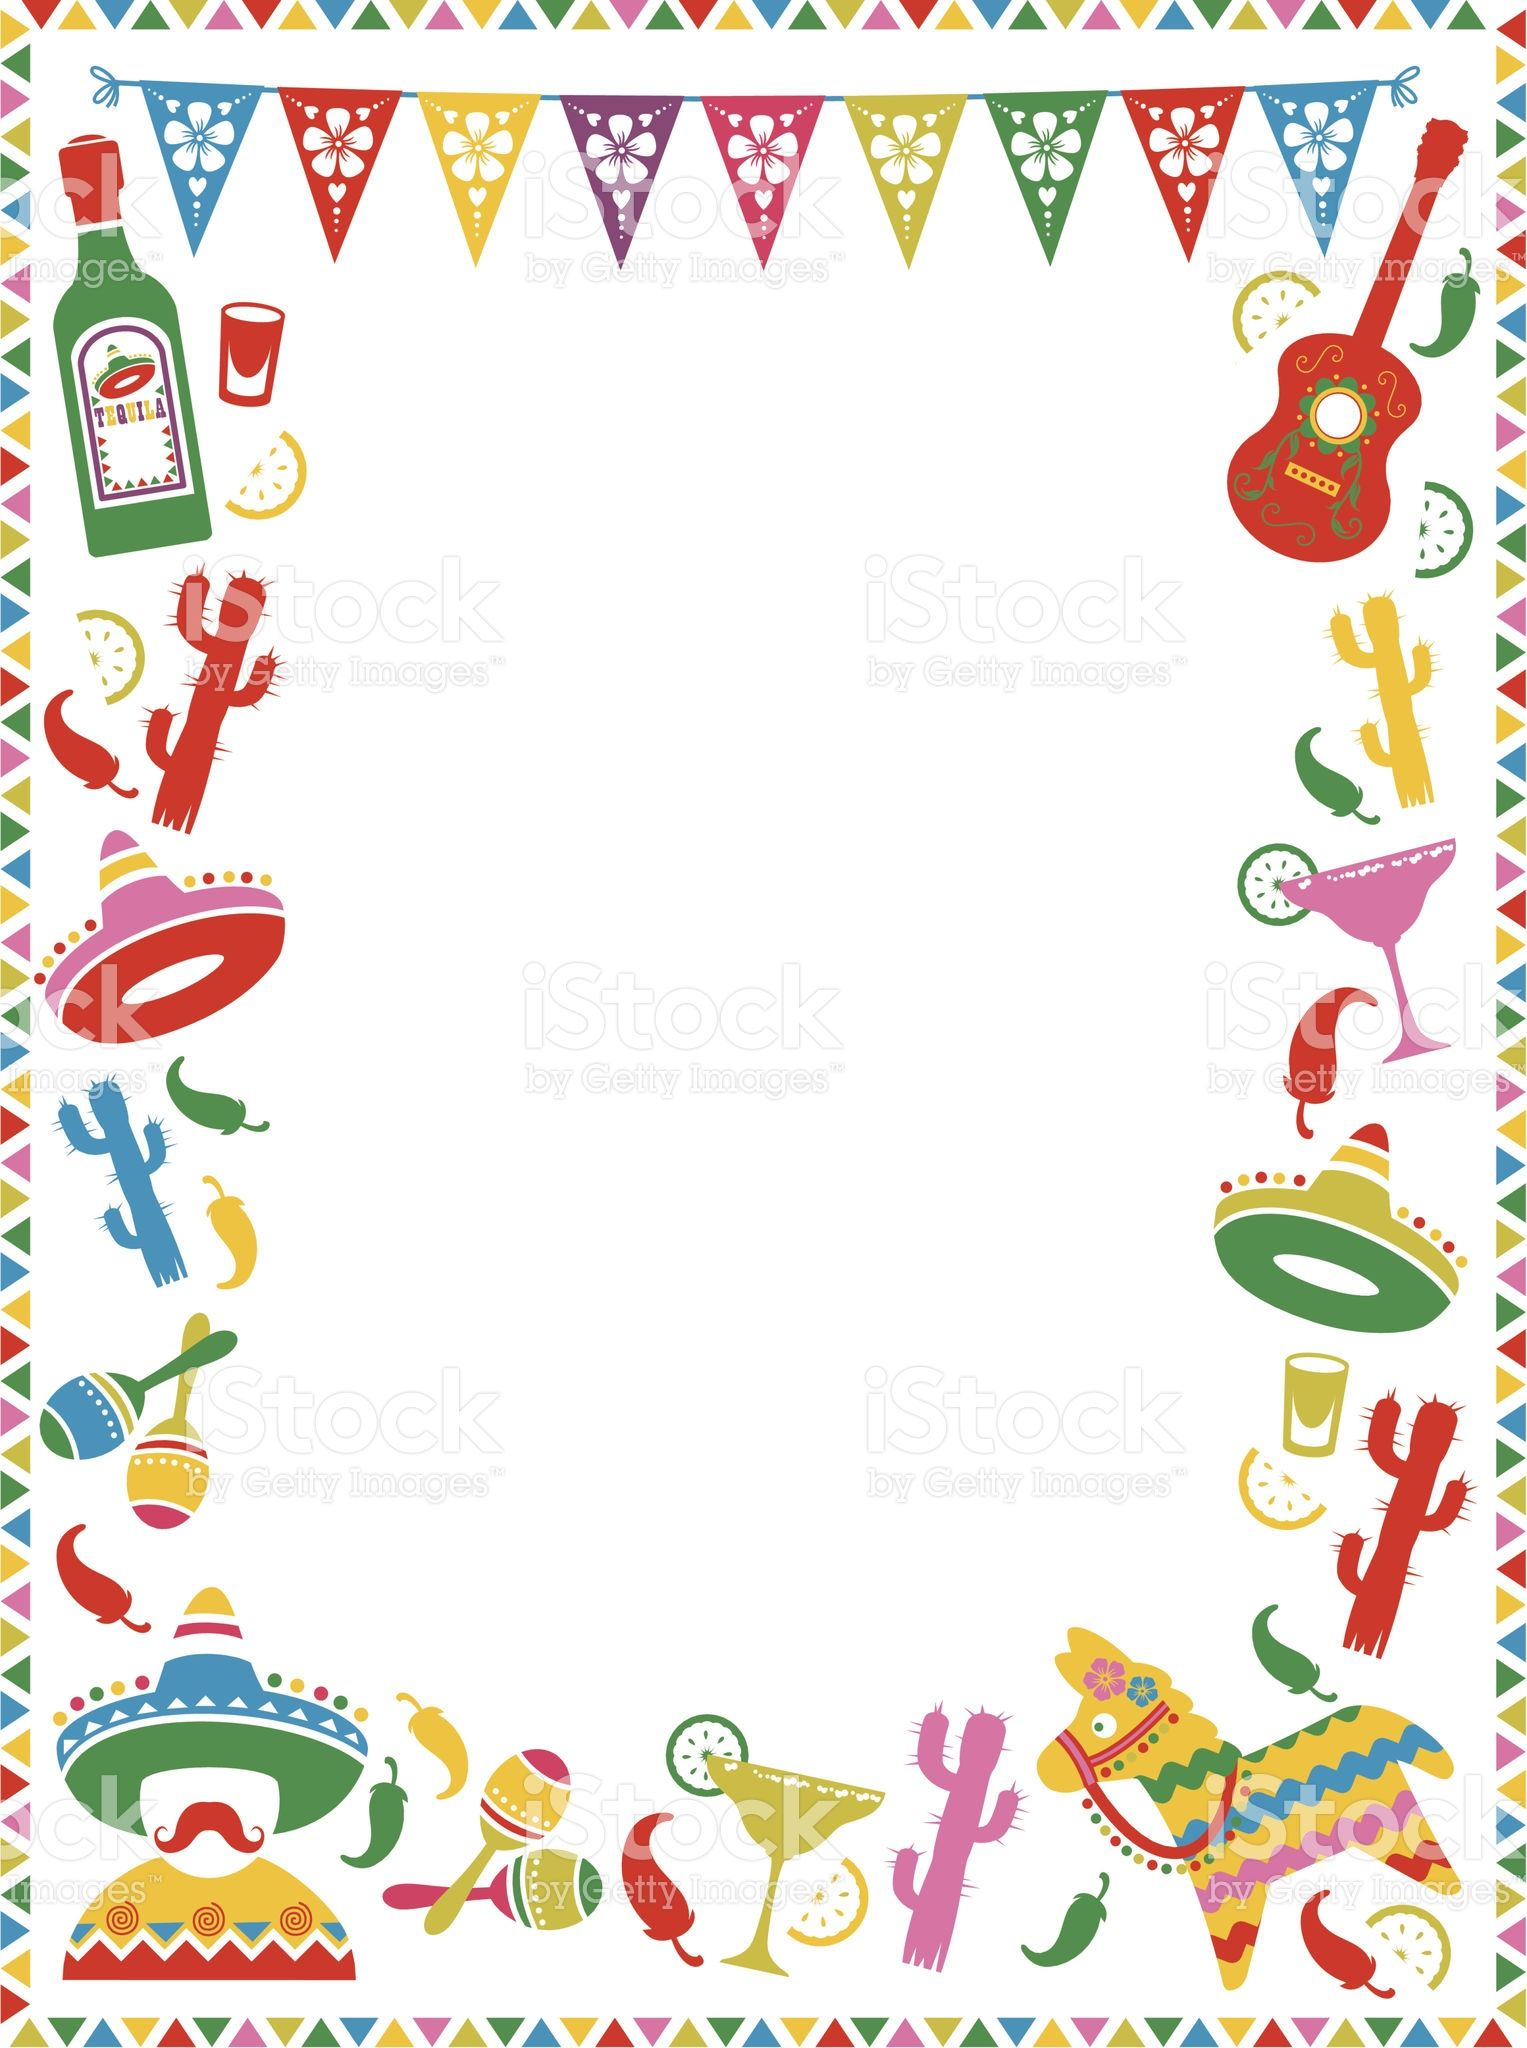 A Mexican themed border. Ideal for menus or party invites. See below.